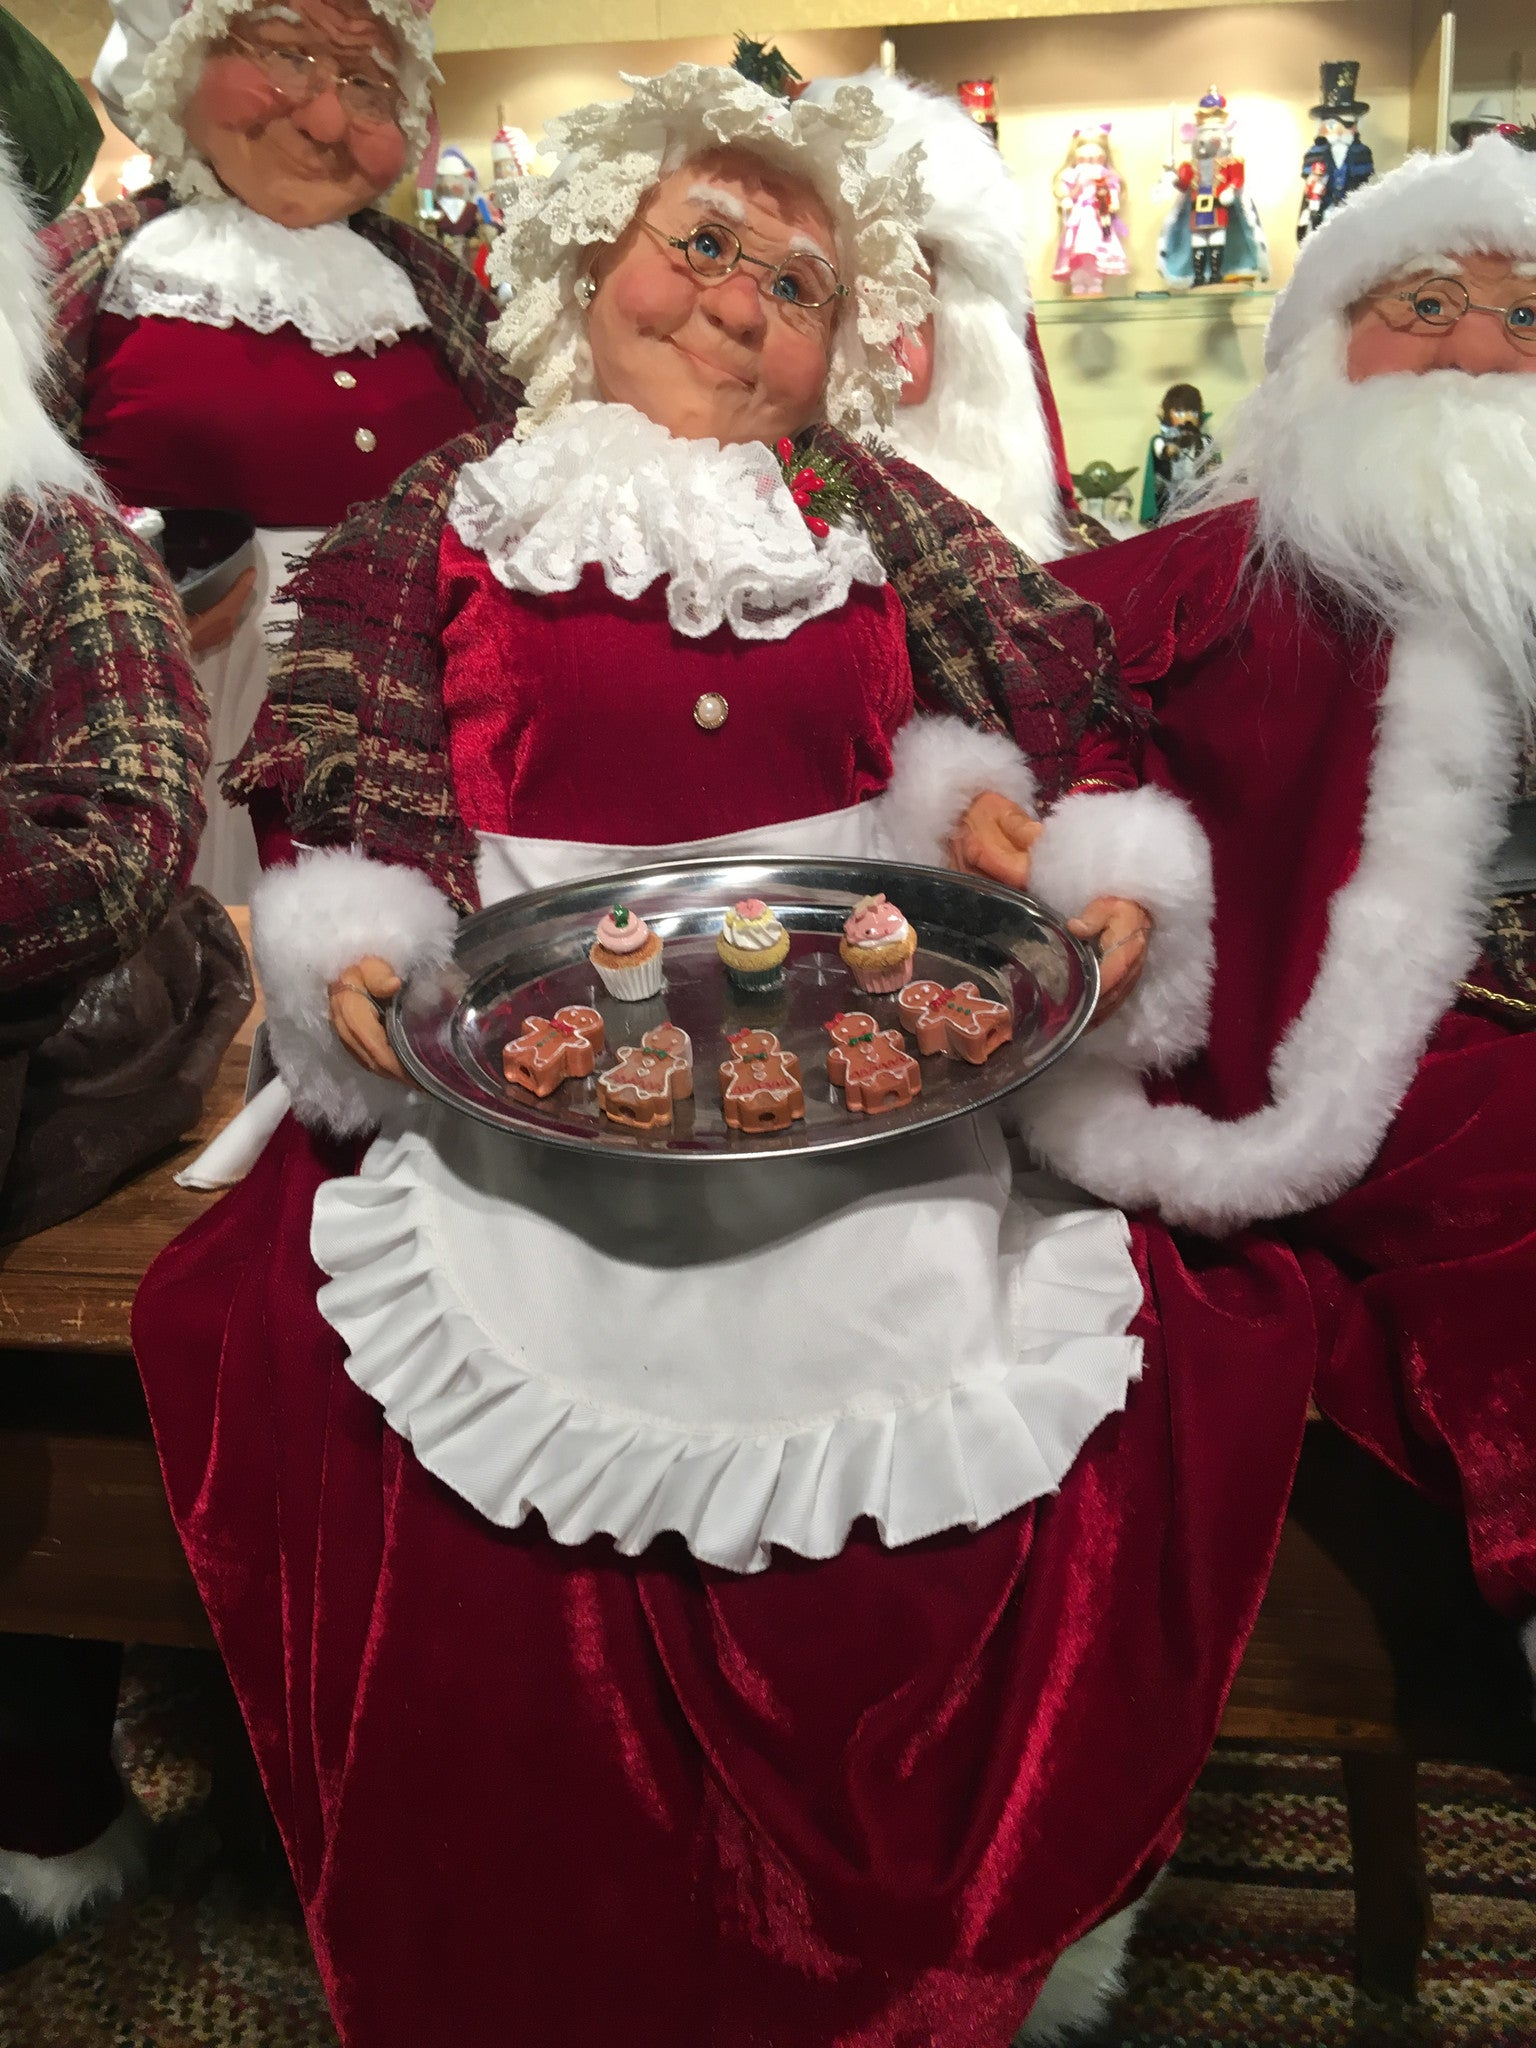 Mrs. Claus with Cookies | Jacqueline Kent Figure - TheHolidayBarn.com